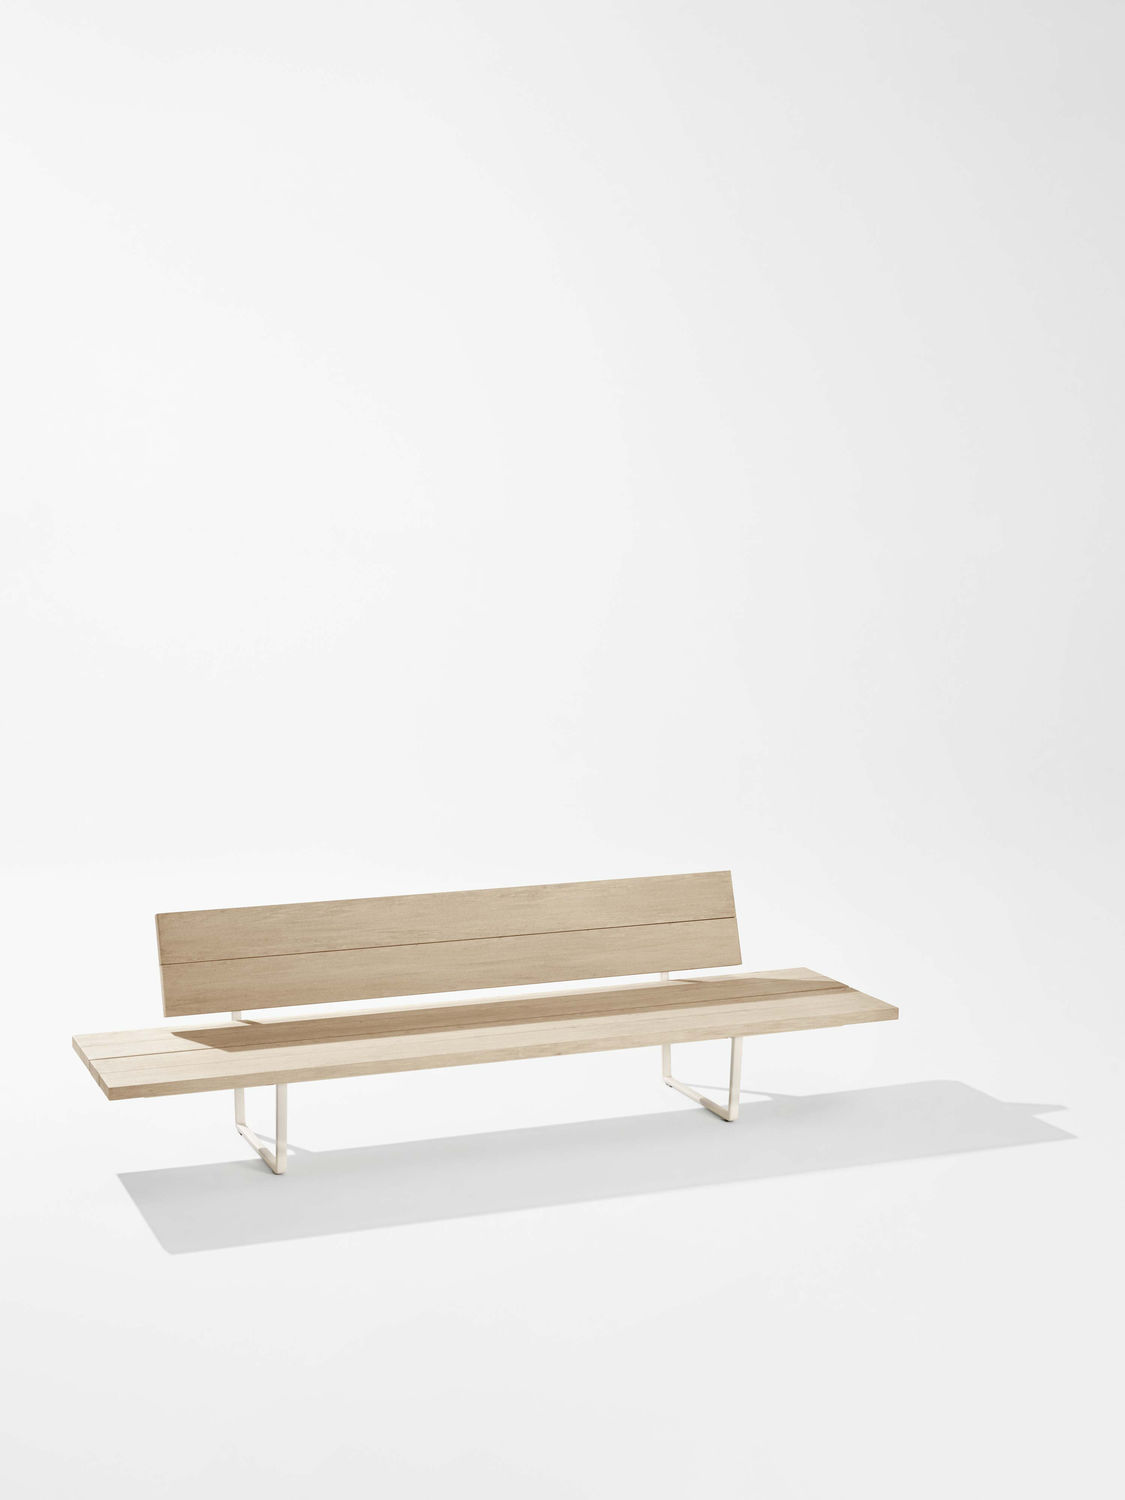 Super Garden Bench Contemporary Aluminum Fabric New Wood Pabps2019 Chair Design Images Pabps2019Com